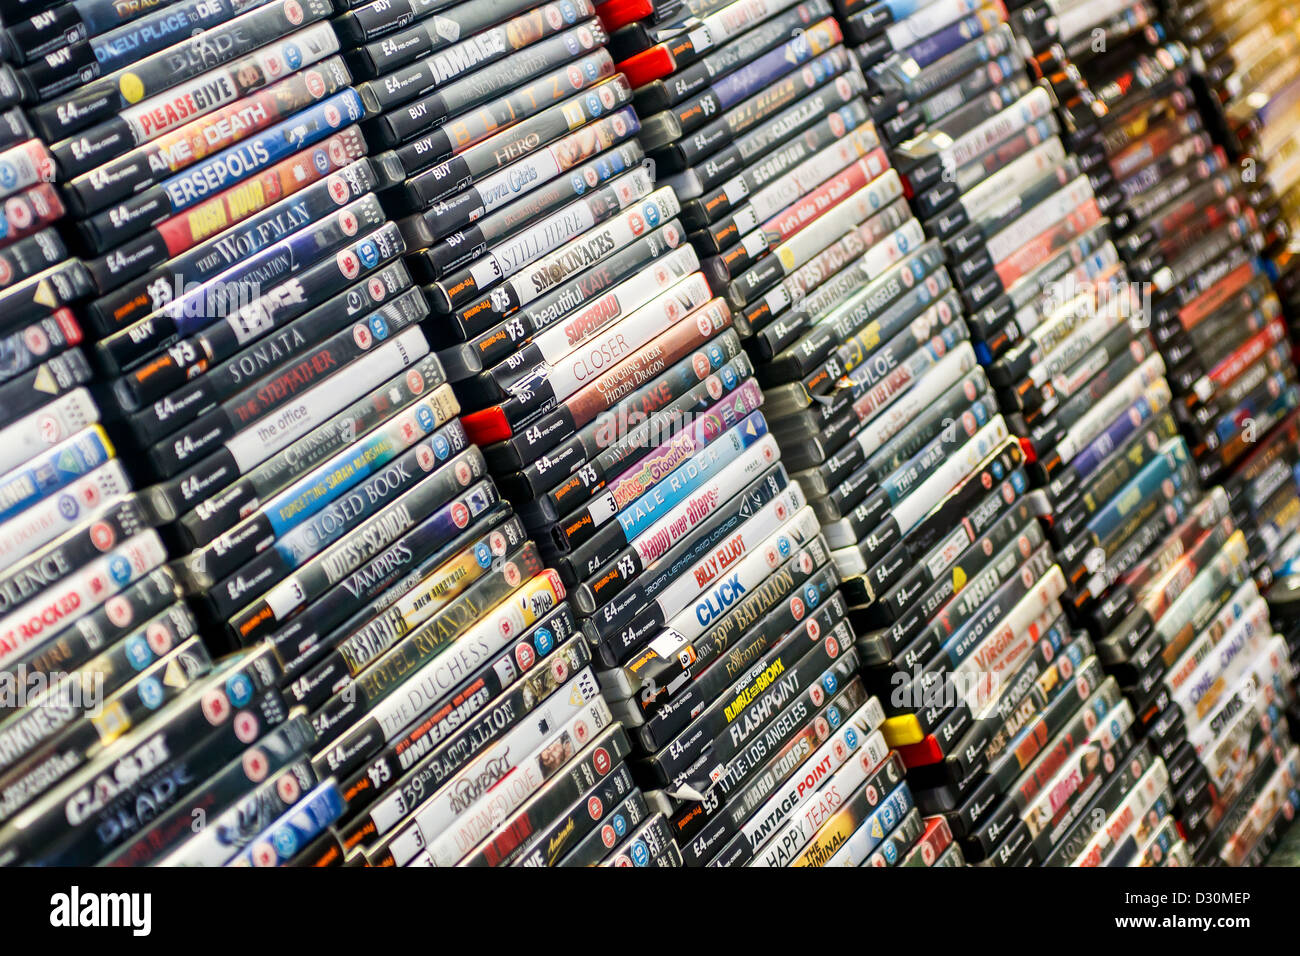 Stacks Of Dvd Movies For Sale Stock Photo